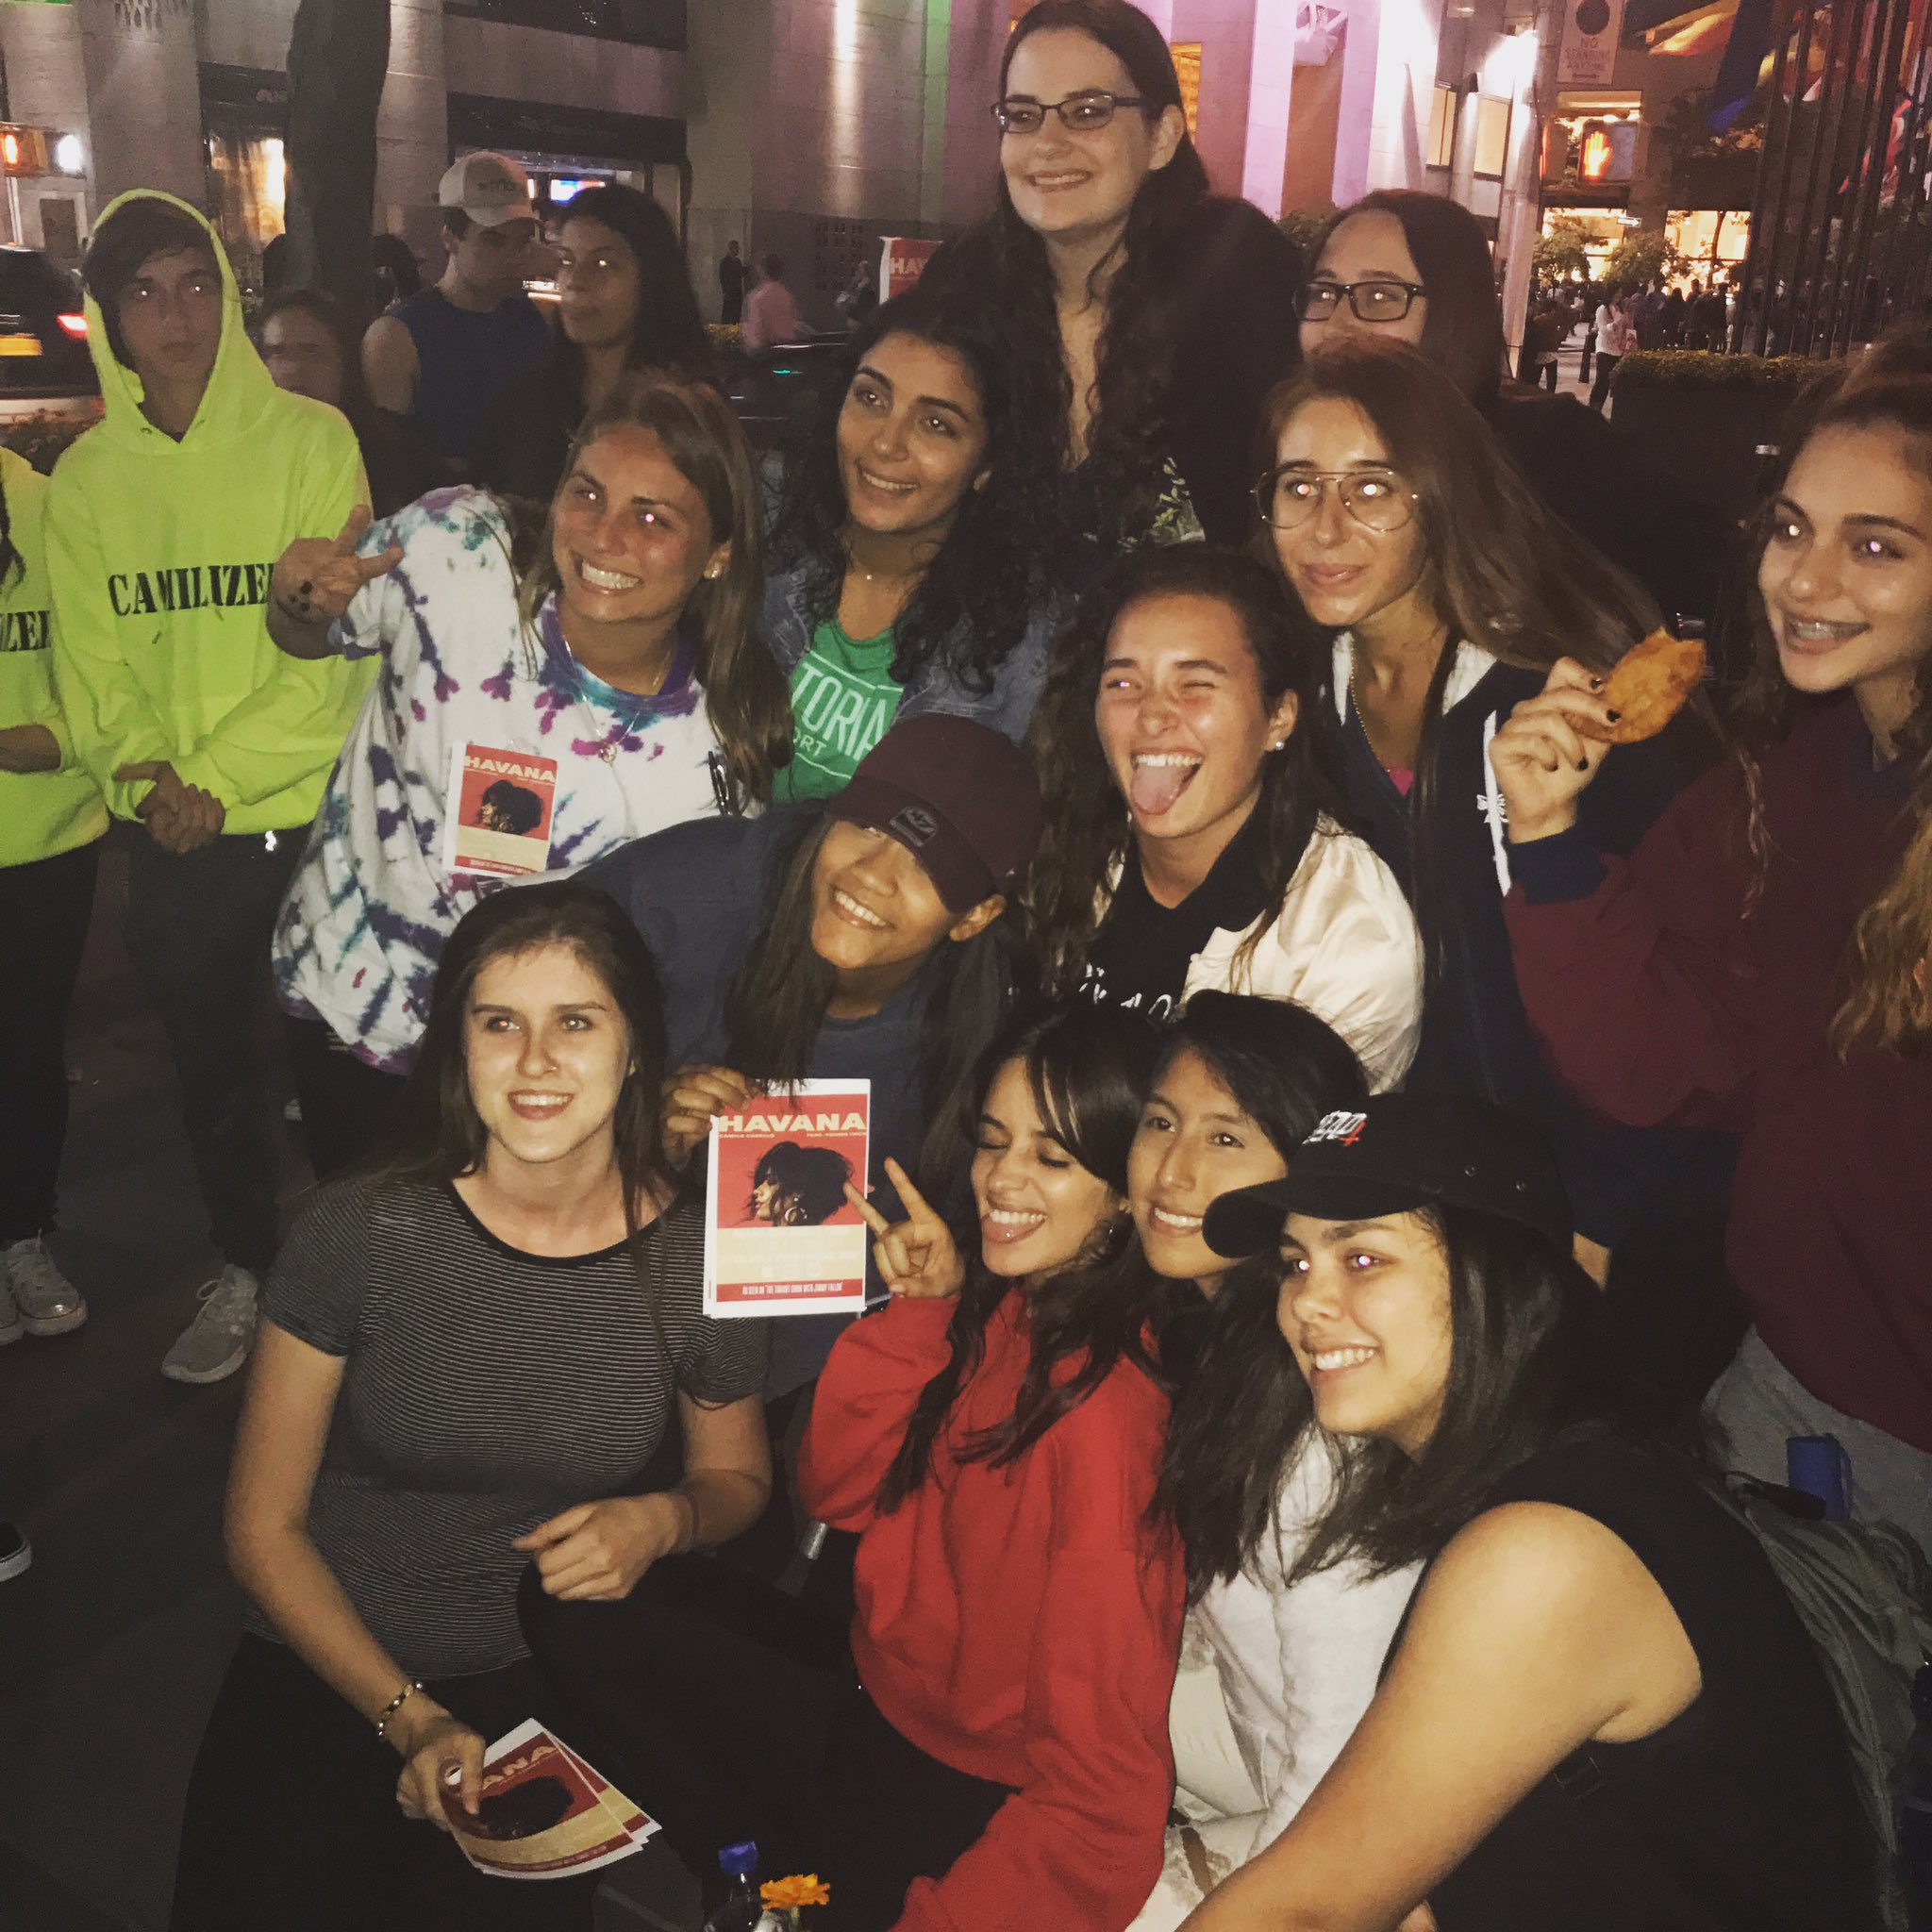 SURPRISE!!!! Look who came to say hello to the early birds camping out for the @todayshow #CamilaCabelloTODAY �� https://t.co/8i2N4nhwnR